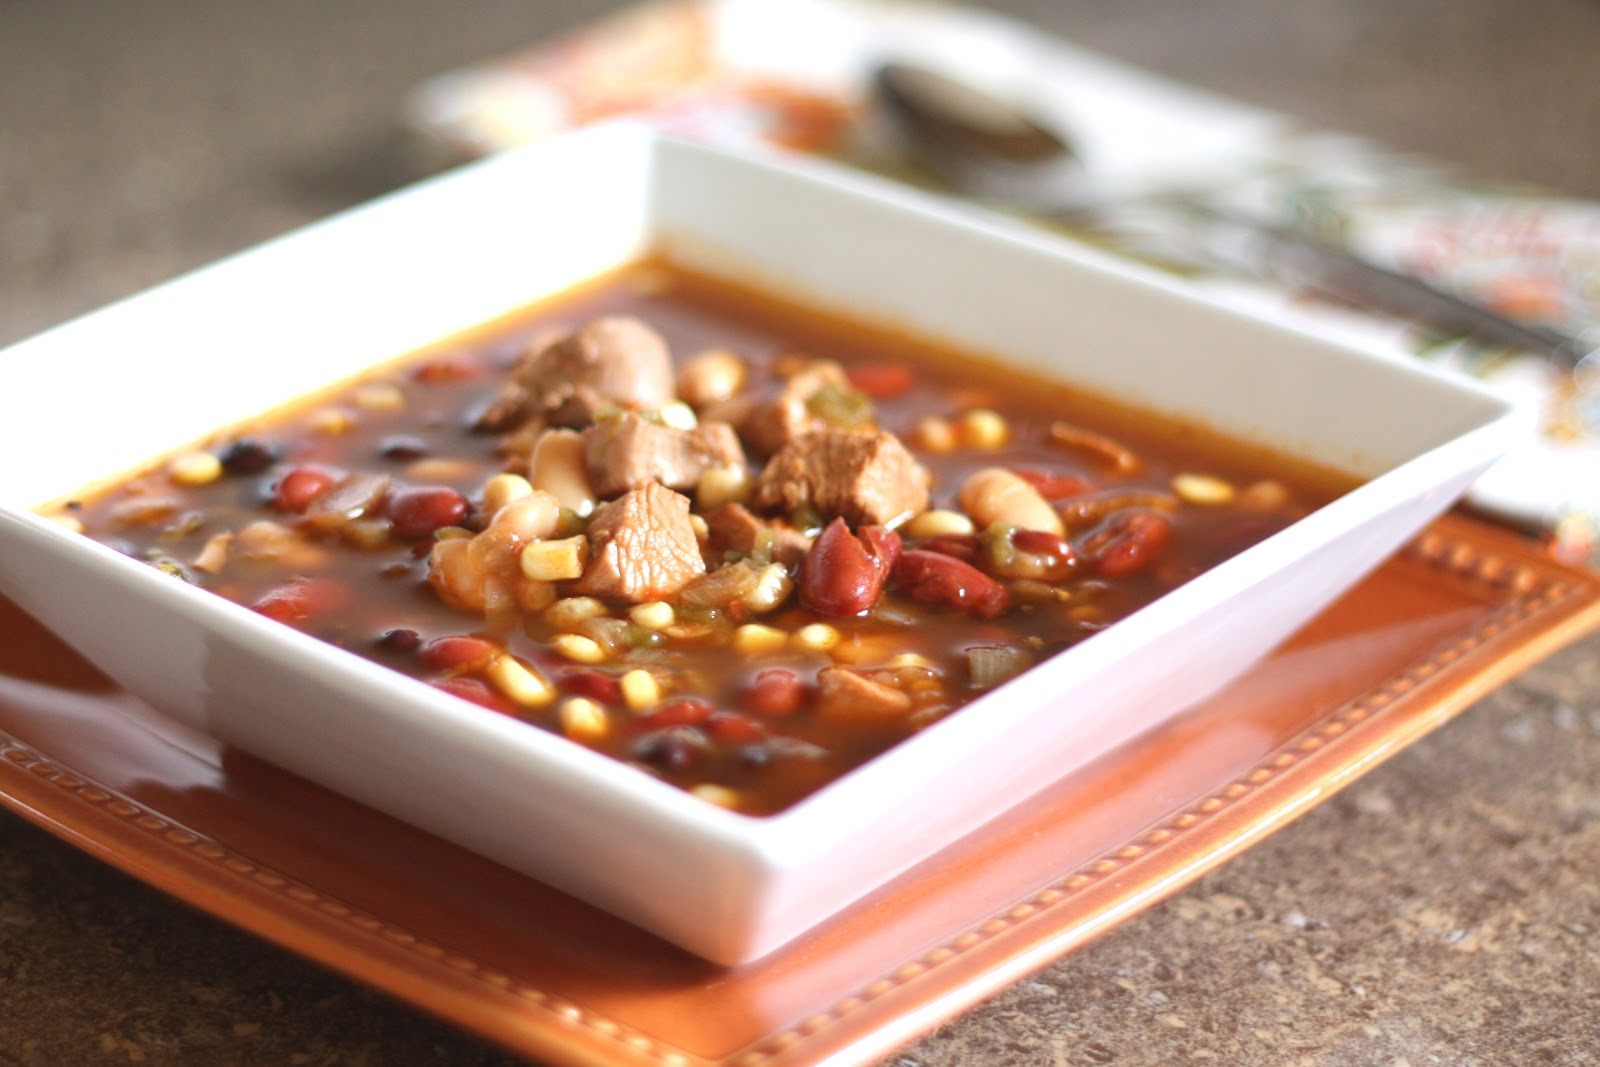 Barefeet In The Kitchen: Spicy Southwest Turkey and Four Bean Soup